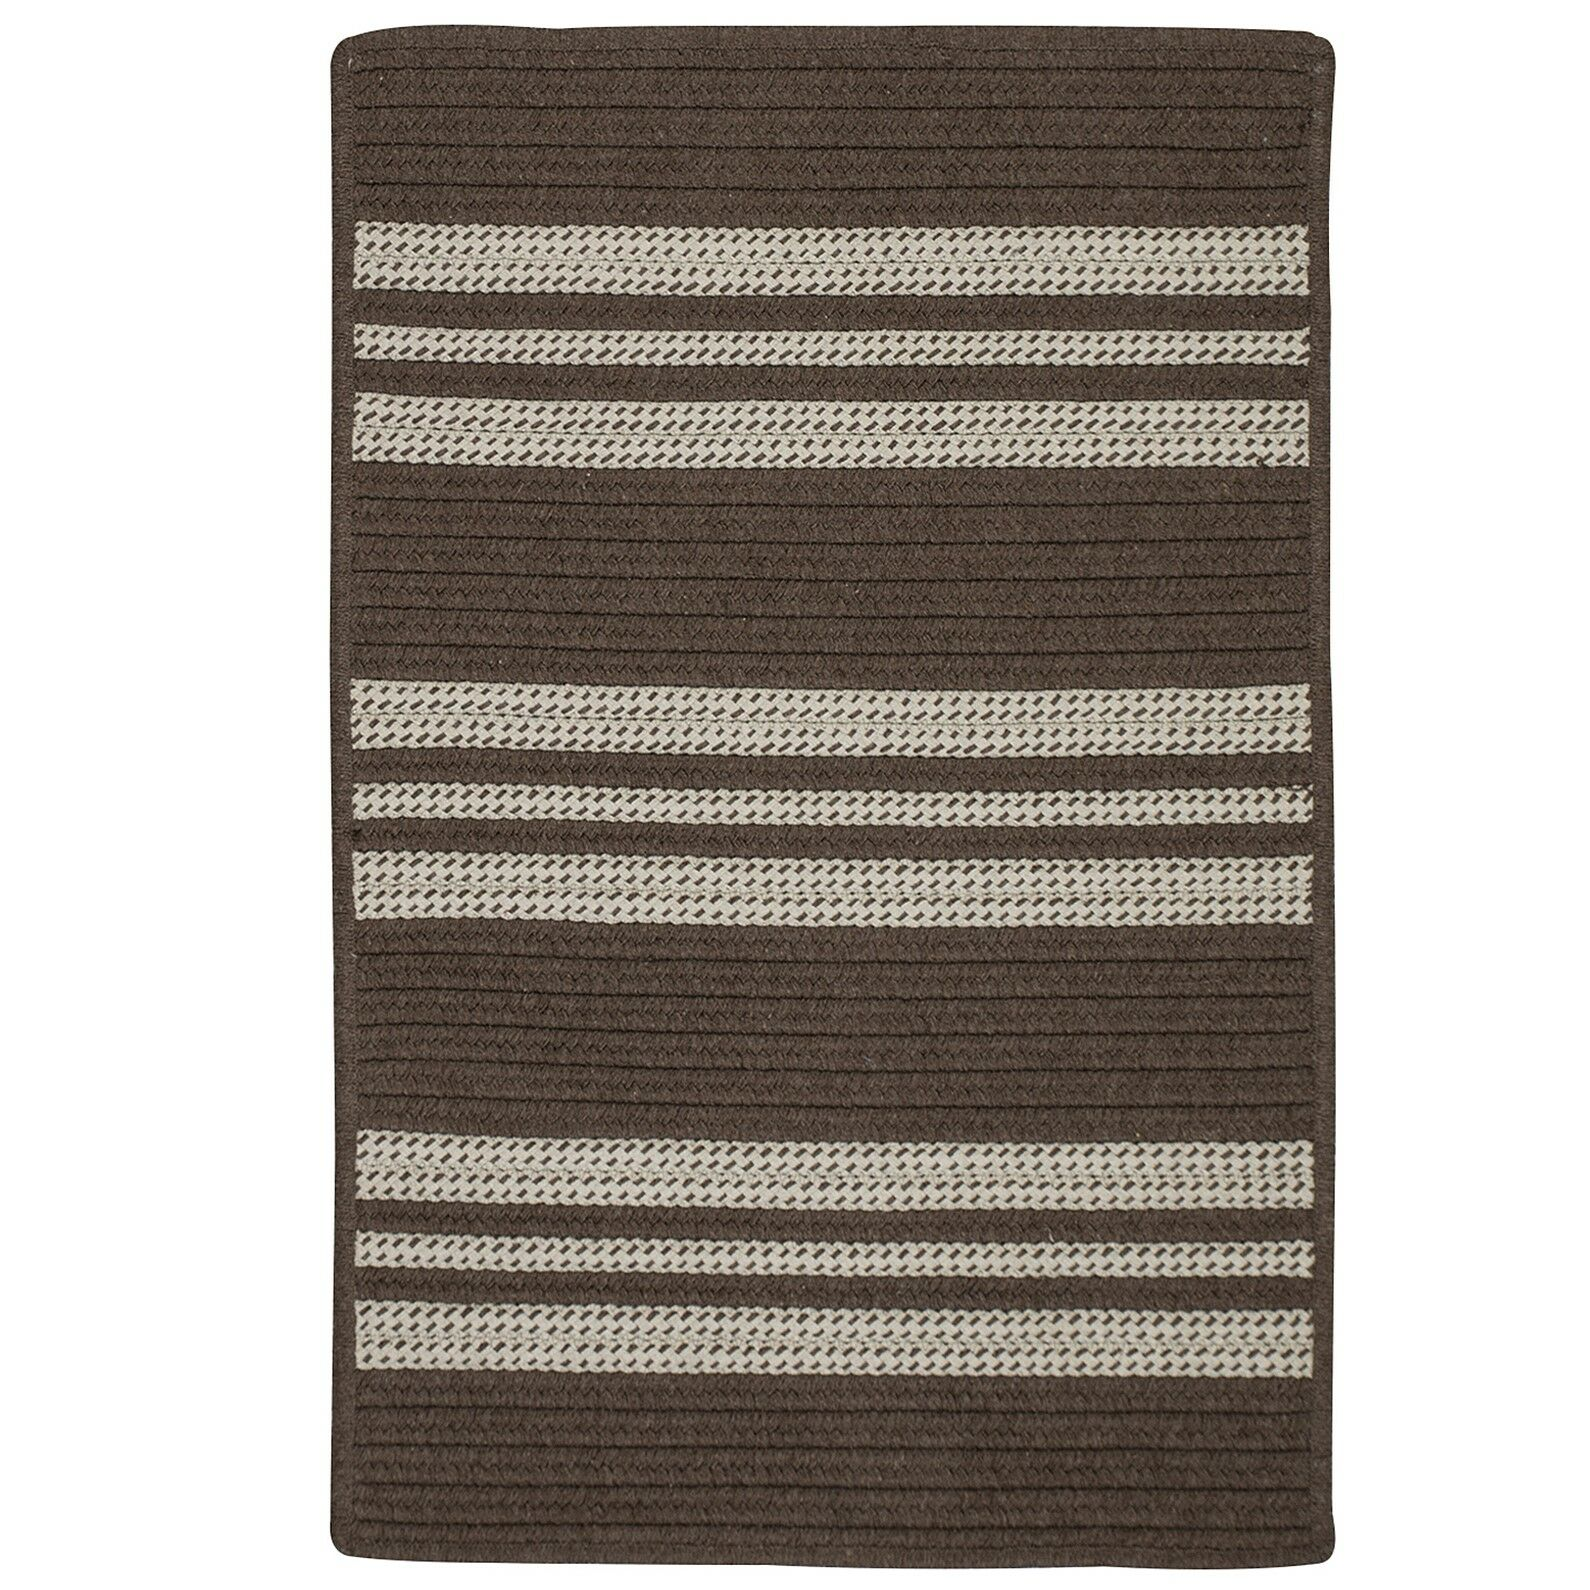 Neponset Hand-Woven Brown Indoor/Outdoor Area Rug Rug Size: 3' x 5'